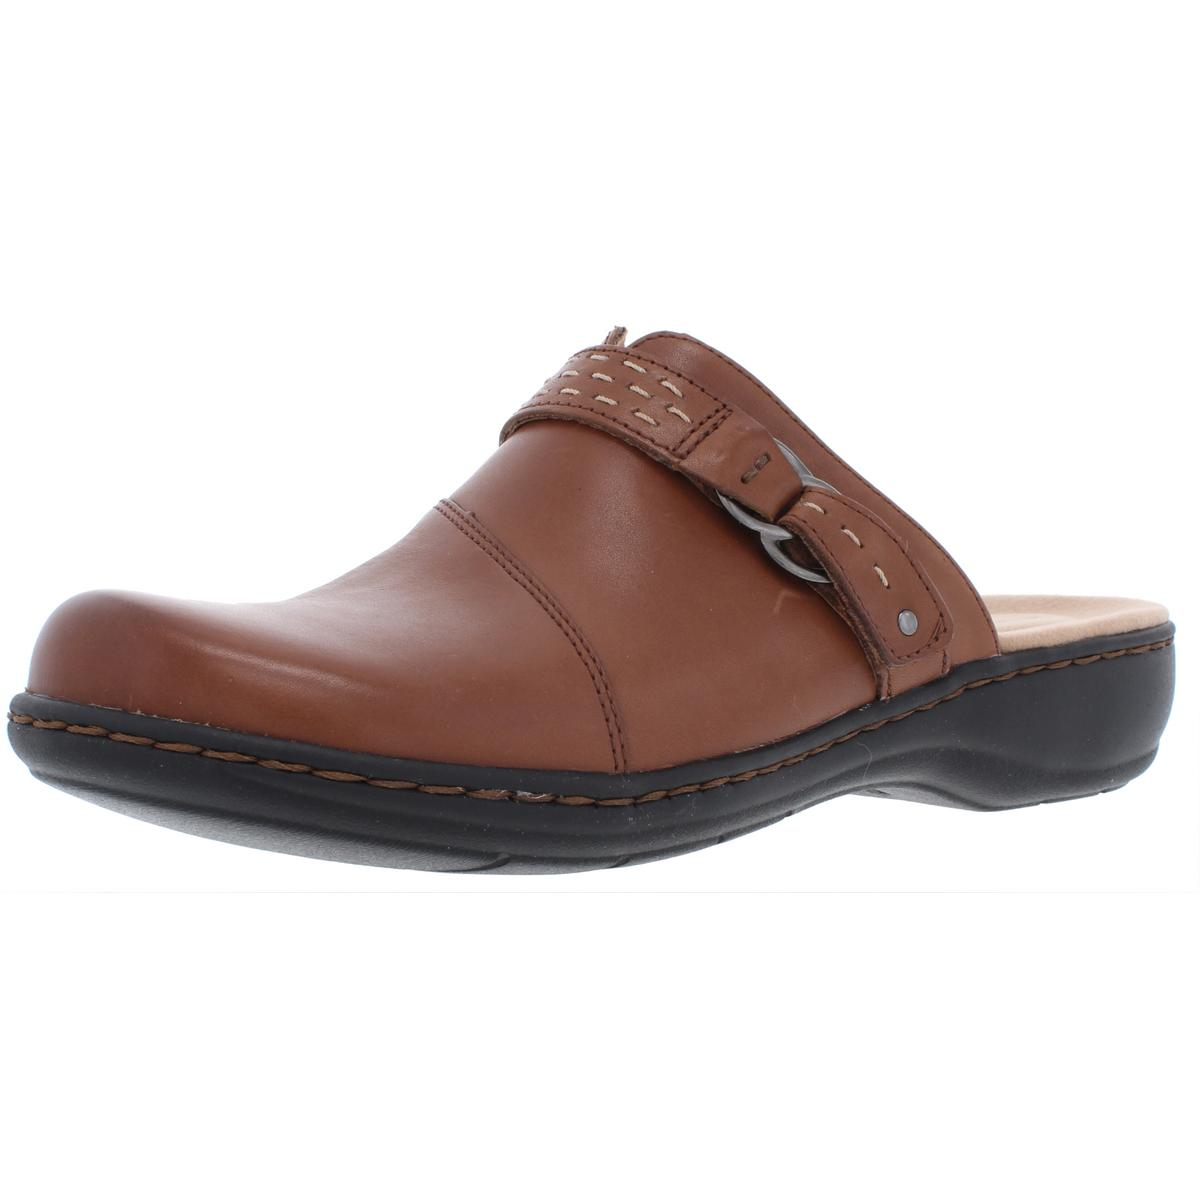 79a79e206042 Details about Clarks Womens Leisa Sadie Tan Leather Slide Mules Shoes 9  Medium (B